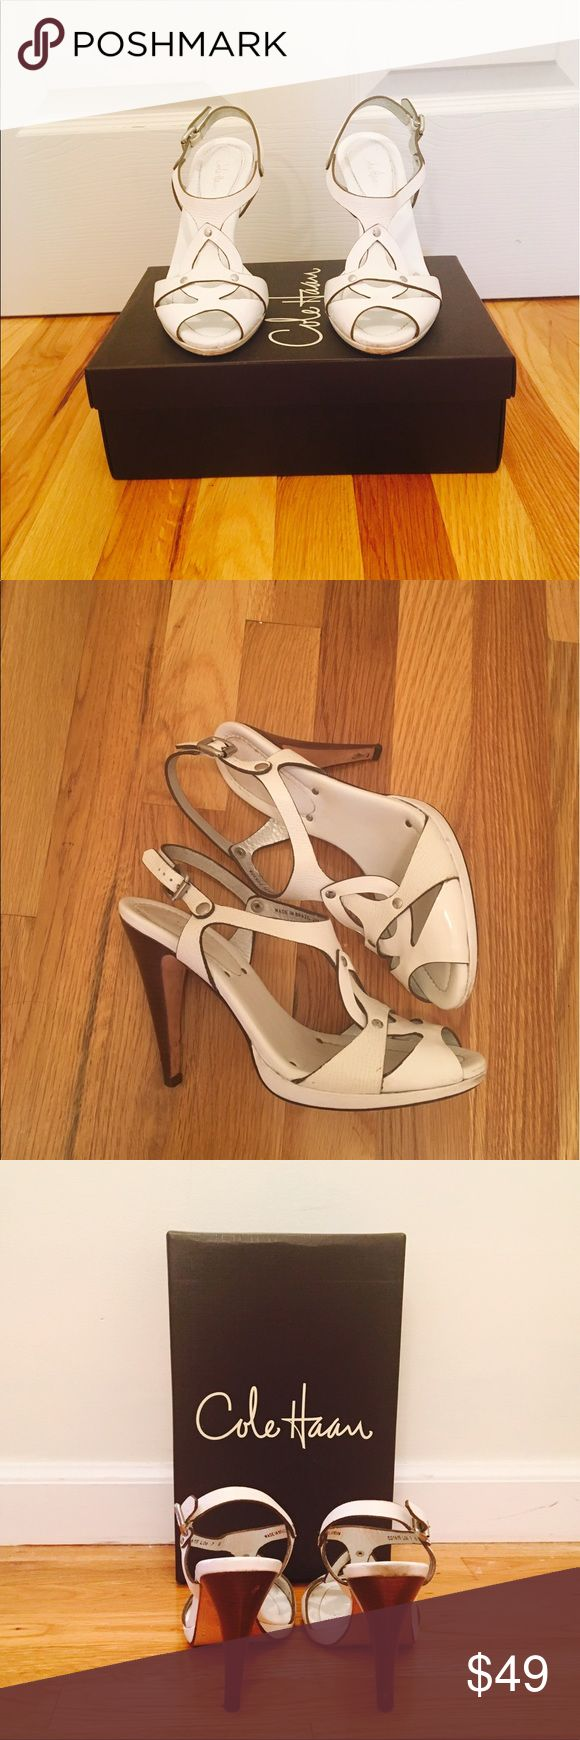 🇺🇸Sale❗️Cole Haan White Sandals❗️ 🇺🇸Sale❗️Today only❗️White Cole Haan Sandals! Combination Calf and Patent Leather! Gently worn. Color transfer by right heel and little wear on heels. size 7❗️🇺🇸 Cole Haan Shoes Sandals